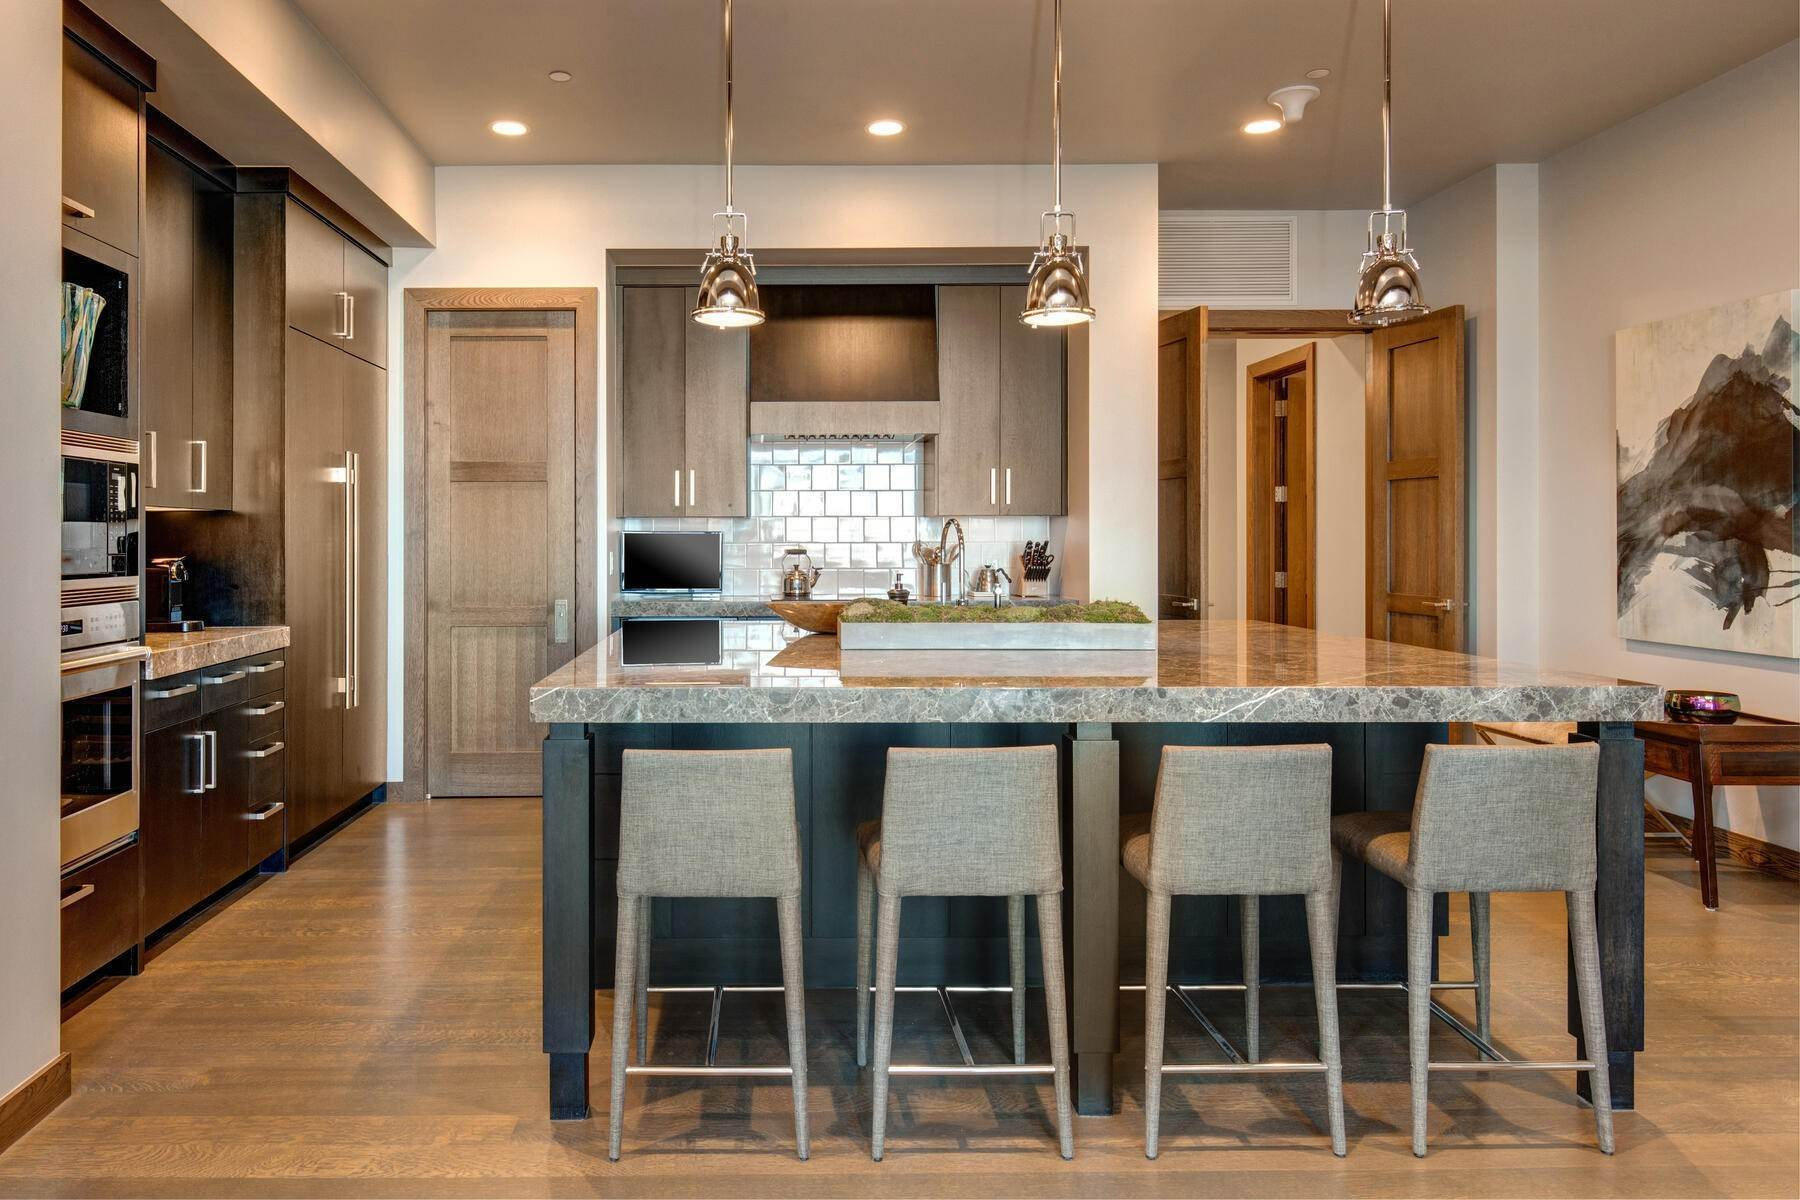 12. Condominiums for Sale at Ski-In Ski-Out Alpine Luxury Living at Stein Eriksen Residences 6702 Stein Circle #131 Park City, Utah 84060 United States